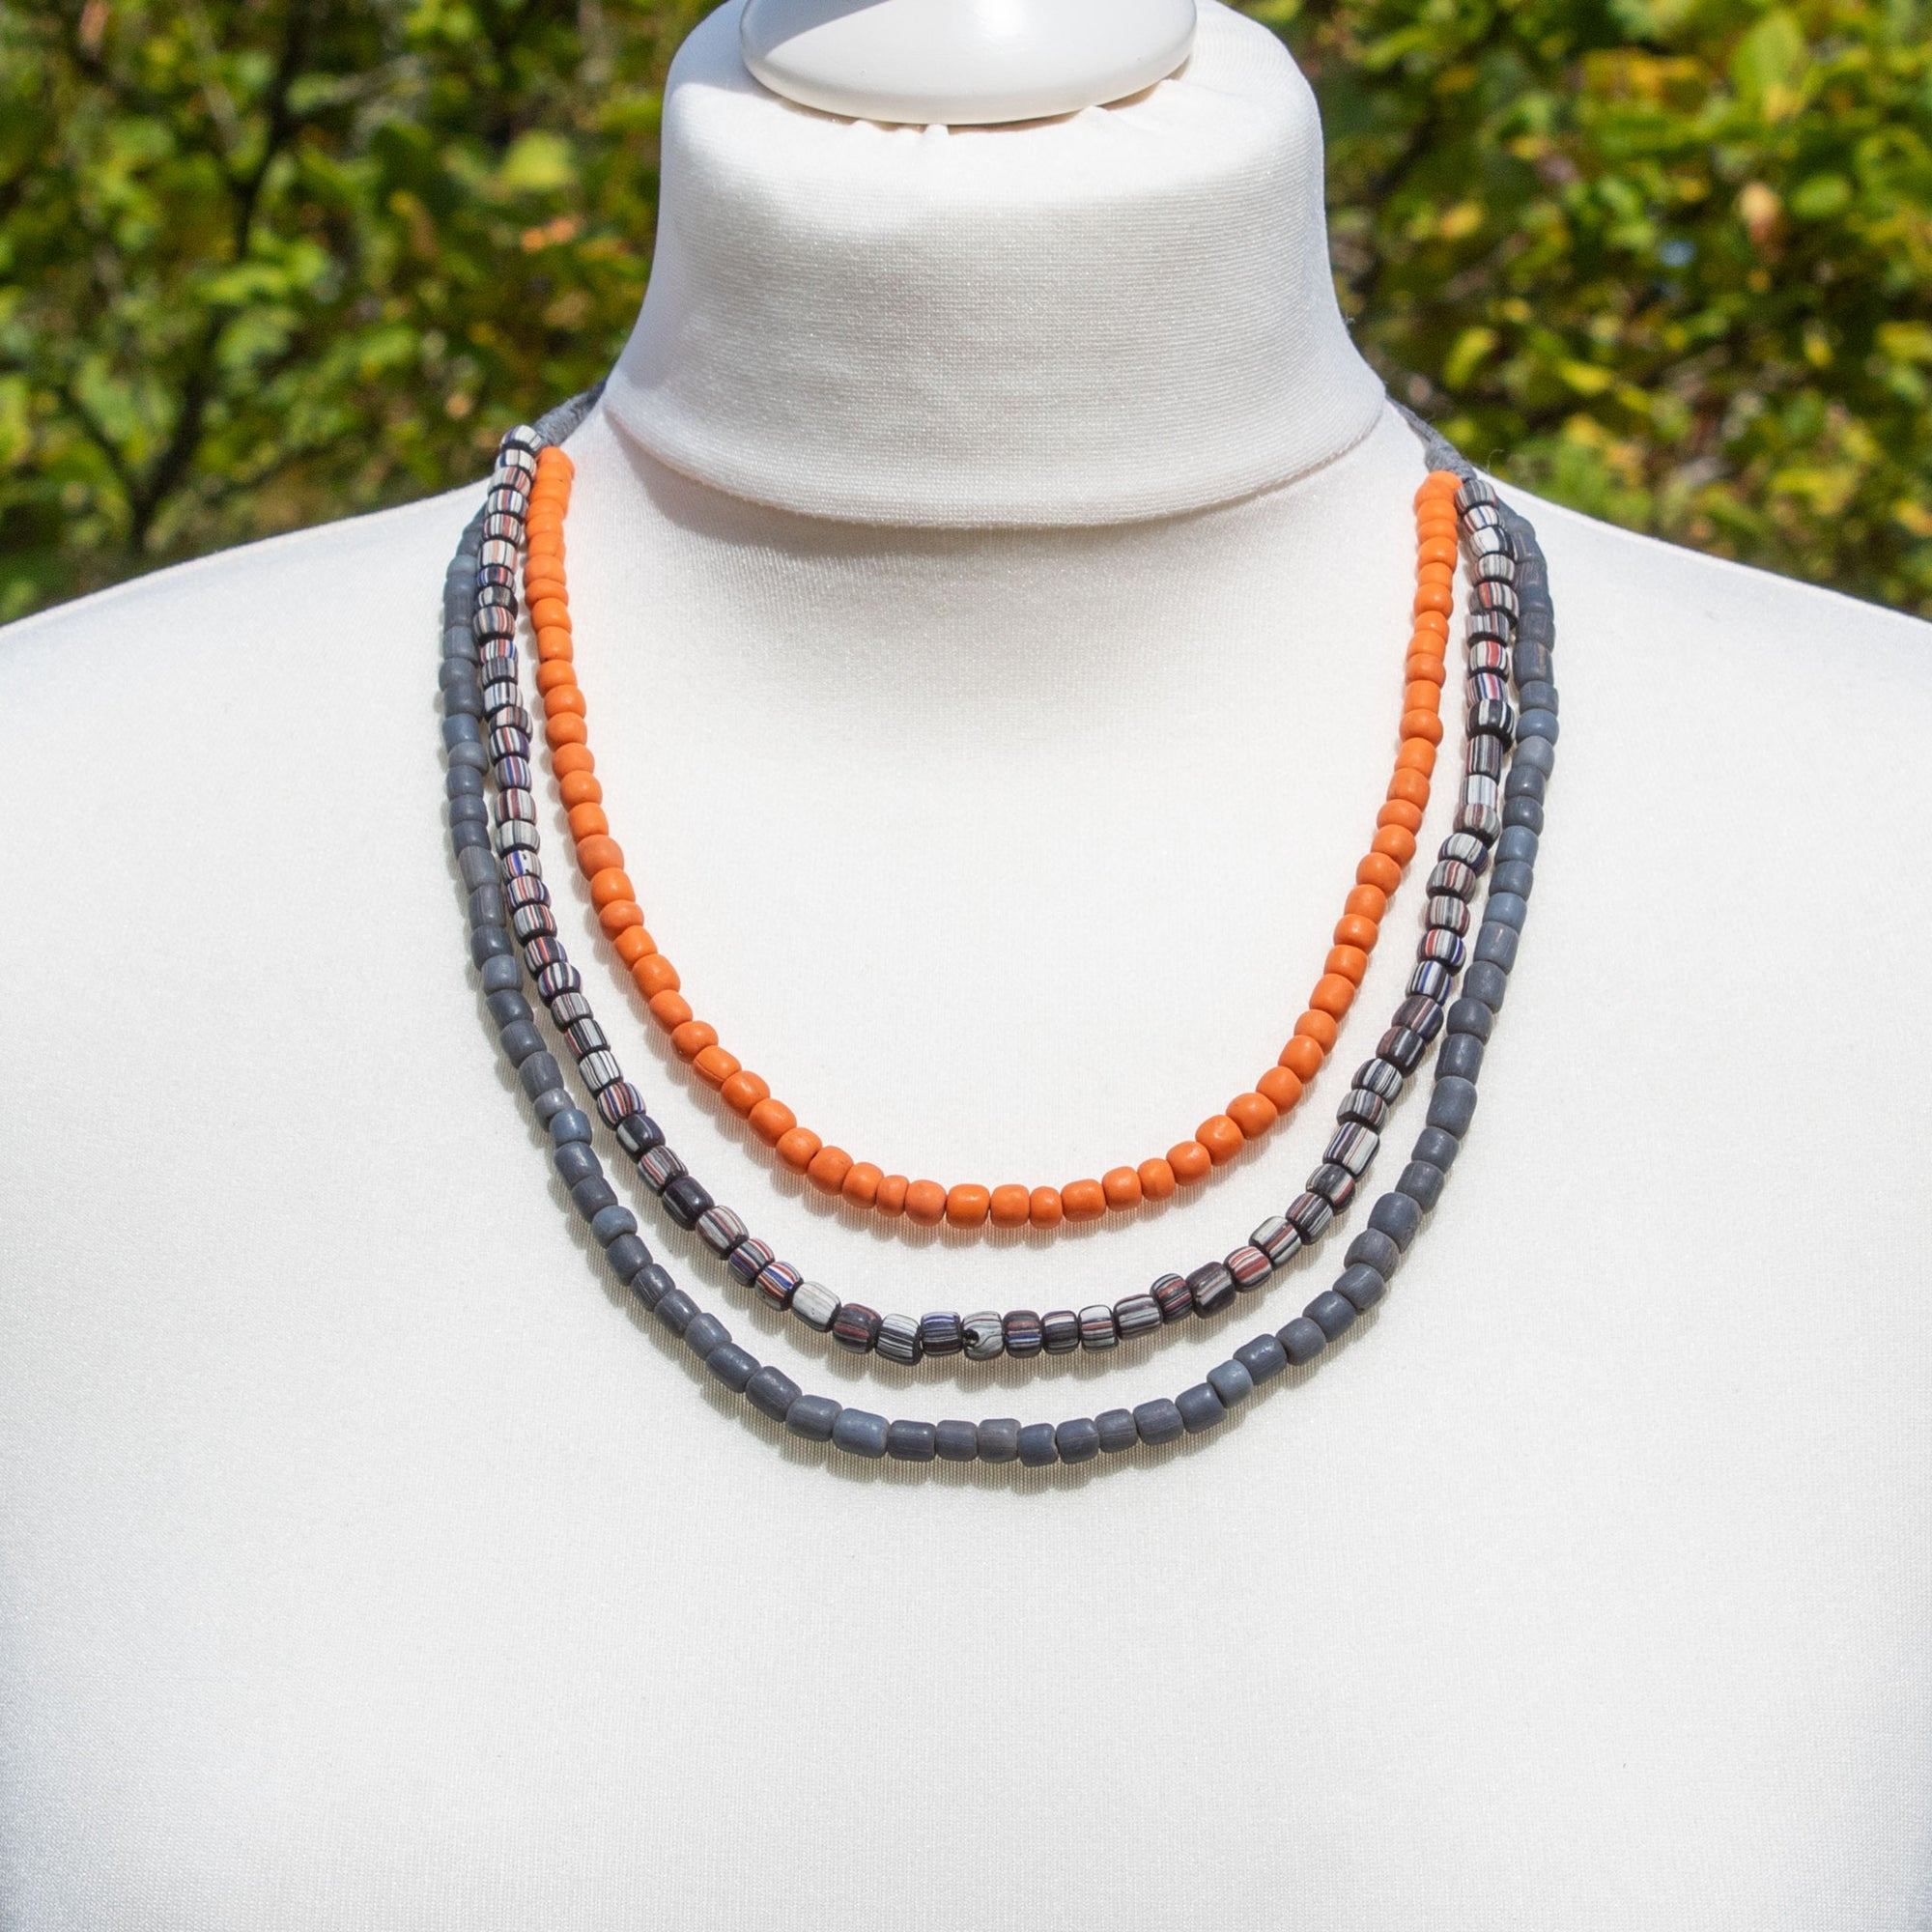 Orange & Grey Glass Bead Necklace | Necklace - The Naughty Shrew